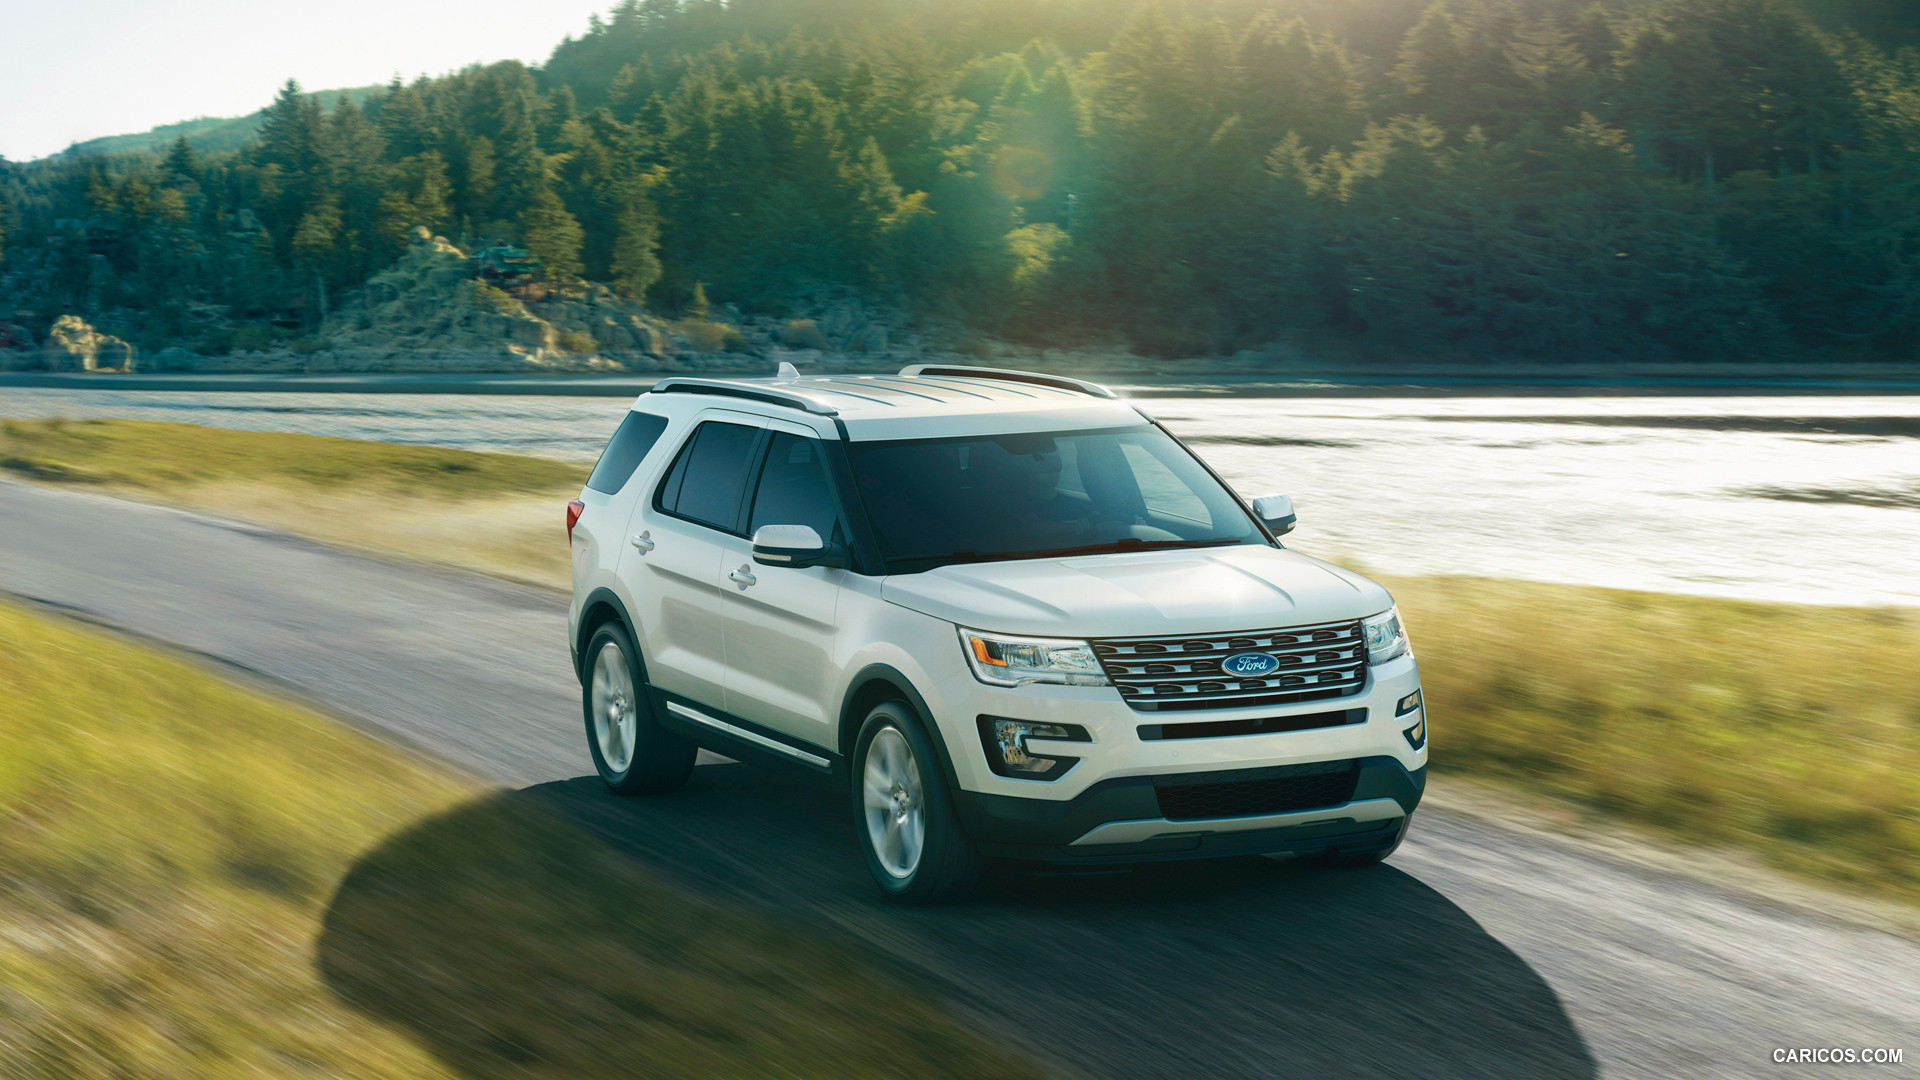 1920x1080 - Ford Explorer Wallpapers 1